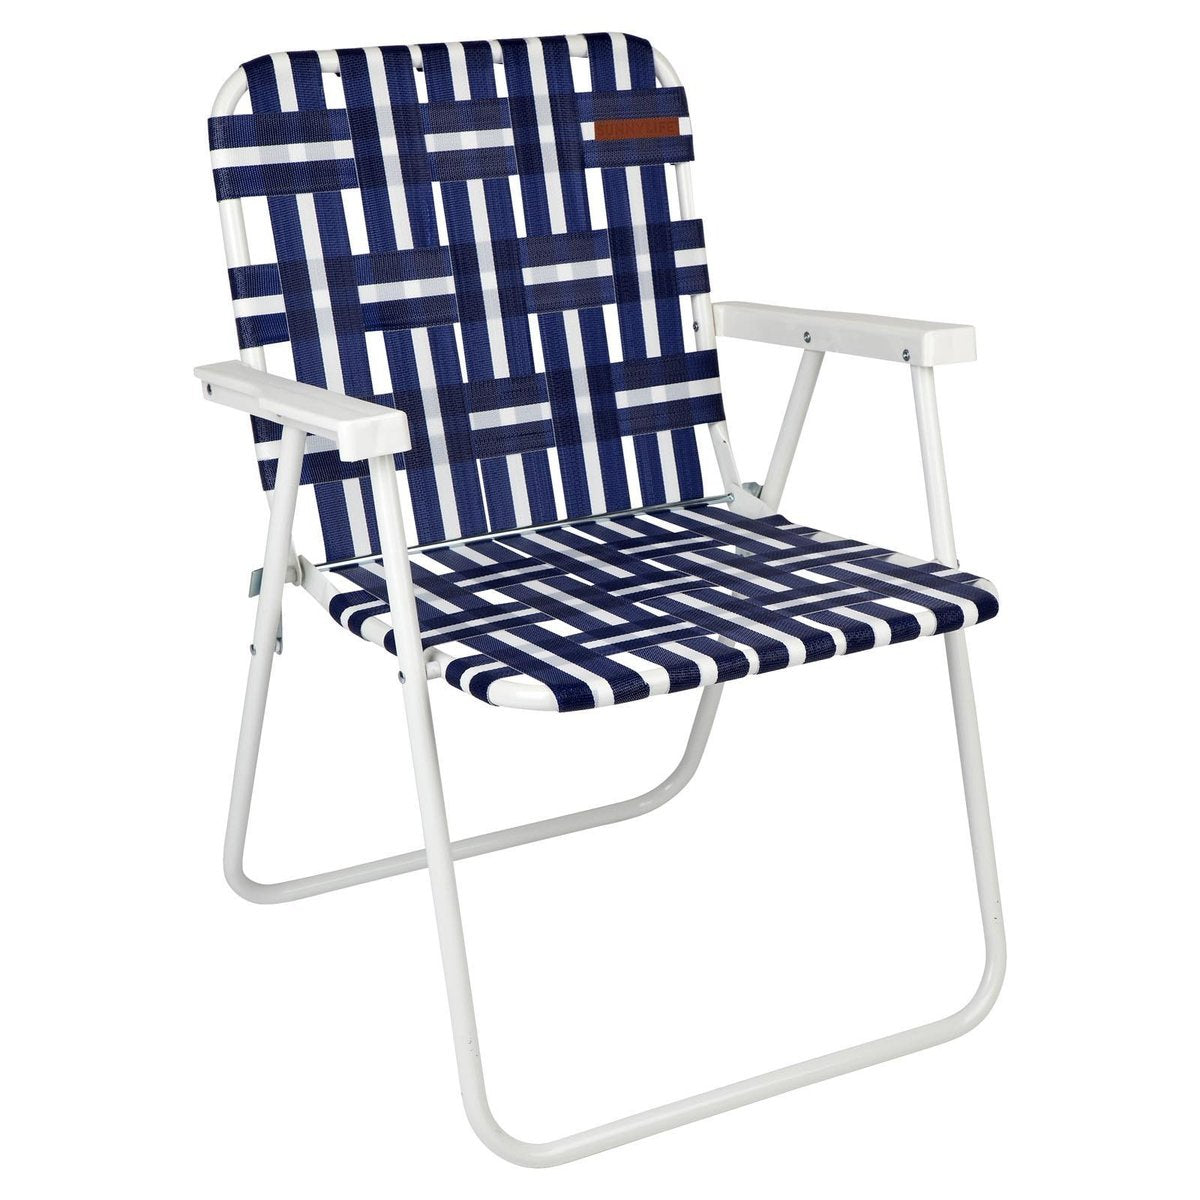 Retro Picnic Chair Azule